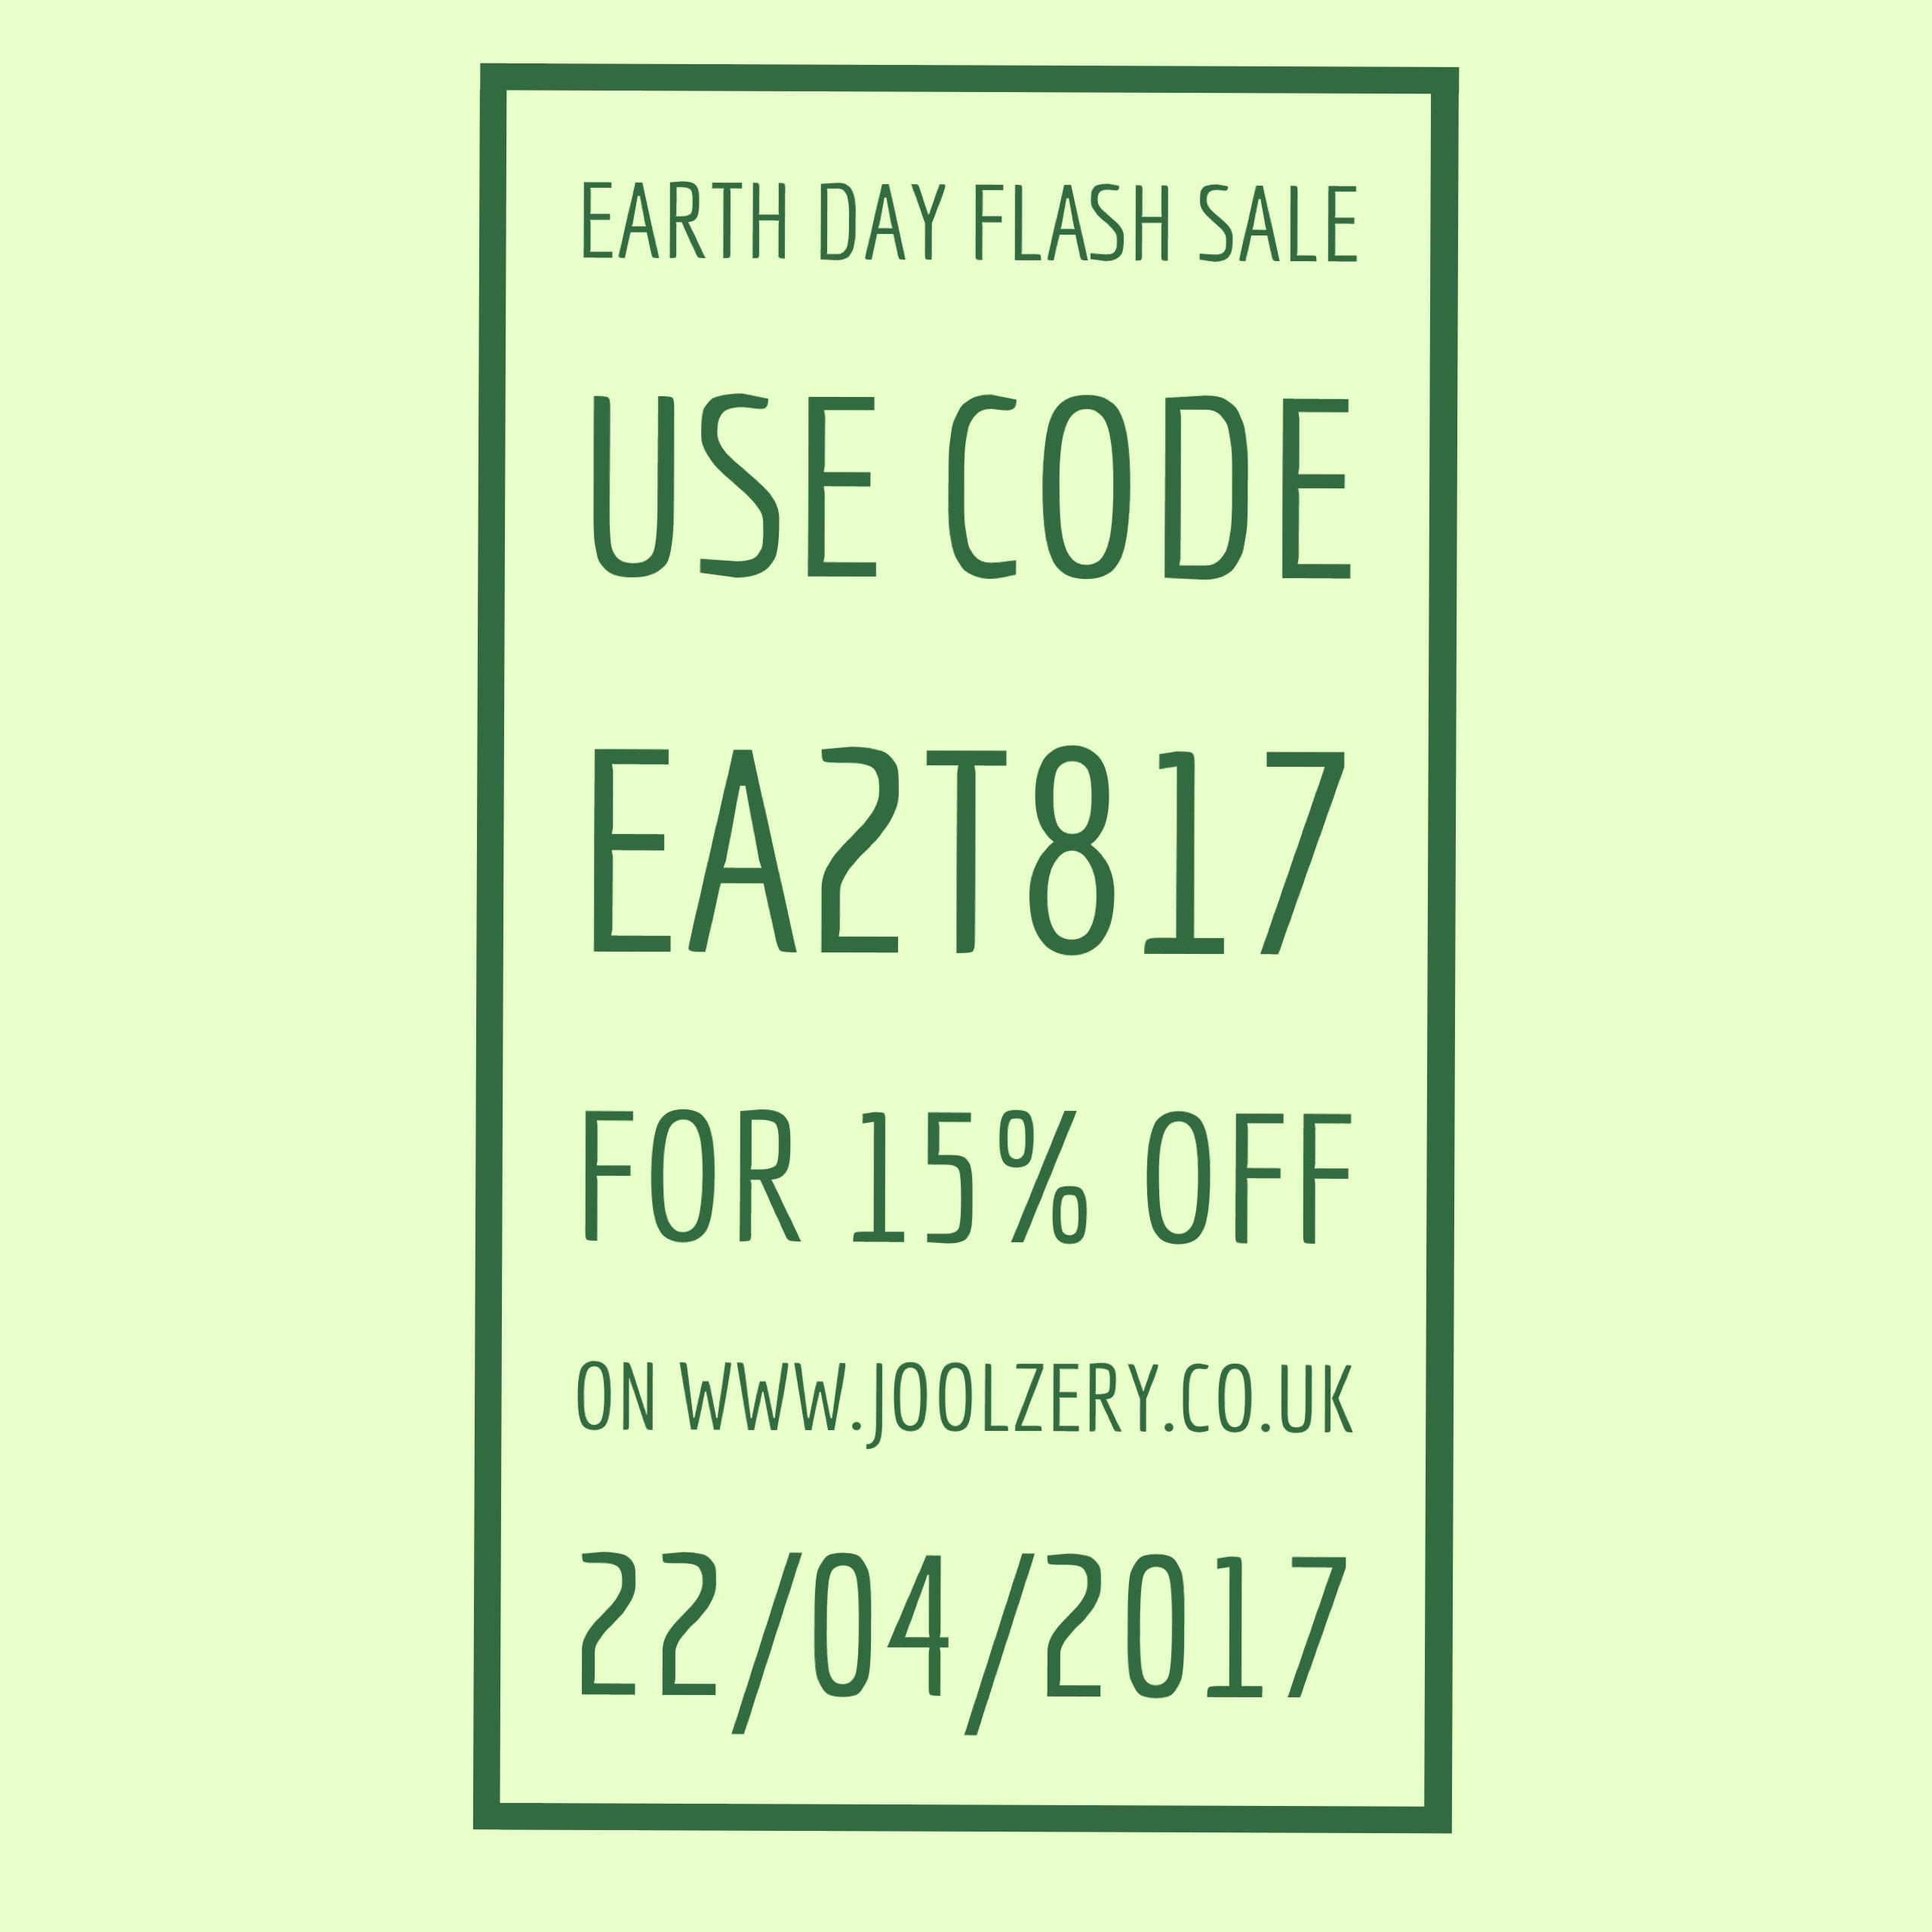 Joolzery Earth Day Flash Sales Code